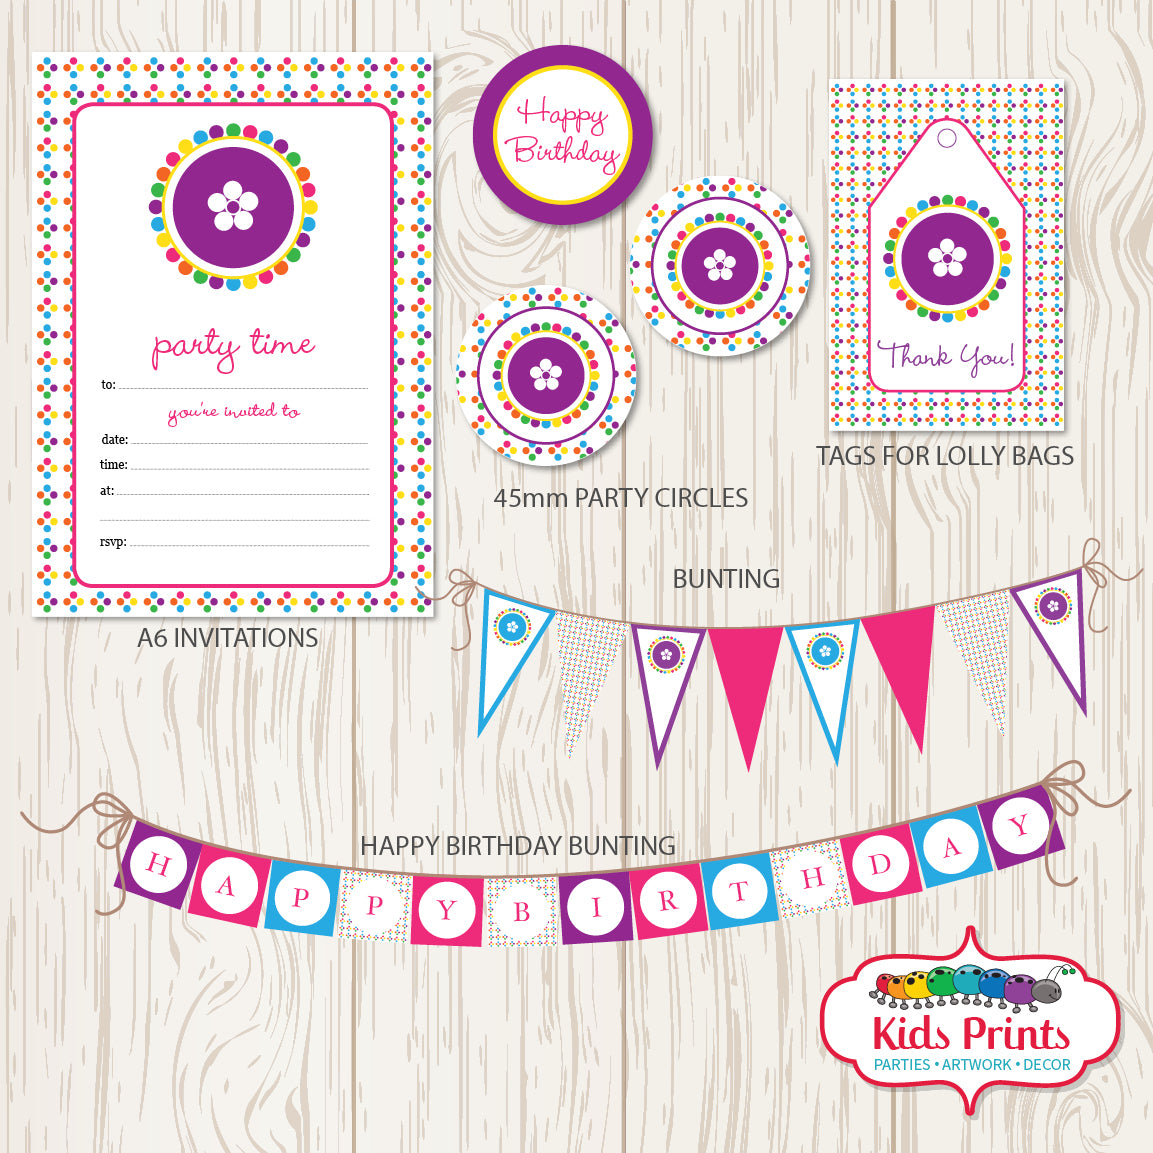 Coloured Dots Printable Party Stationery - Kids Prints Online - kids wall art printable - nursery art printable - printable invitations - digital invitations - kids wall art - kids prints